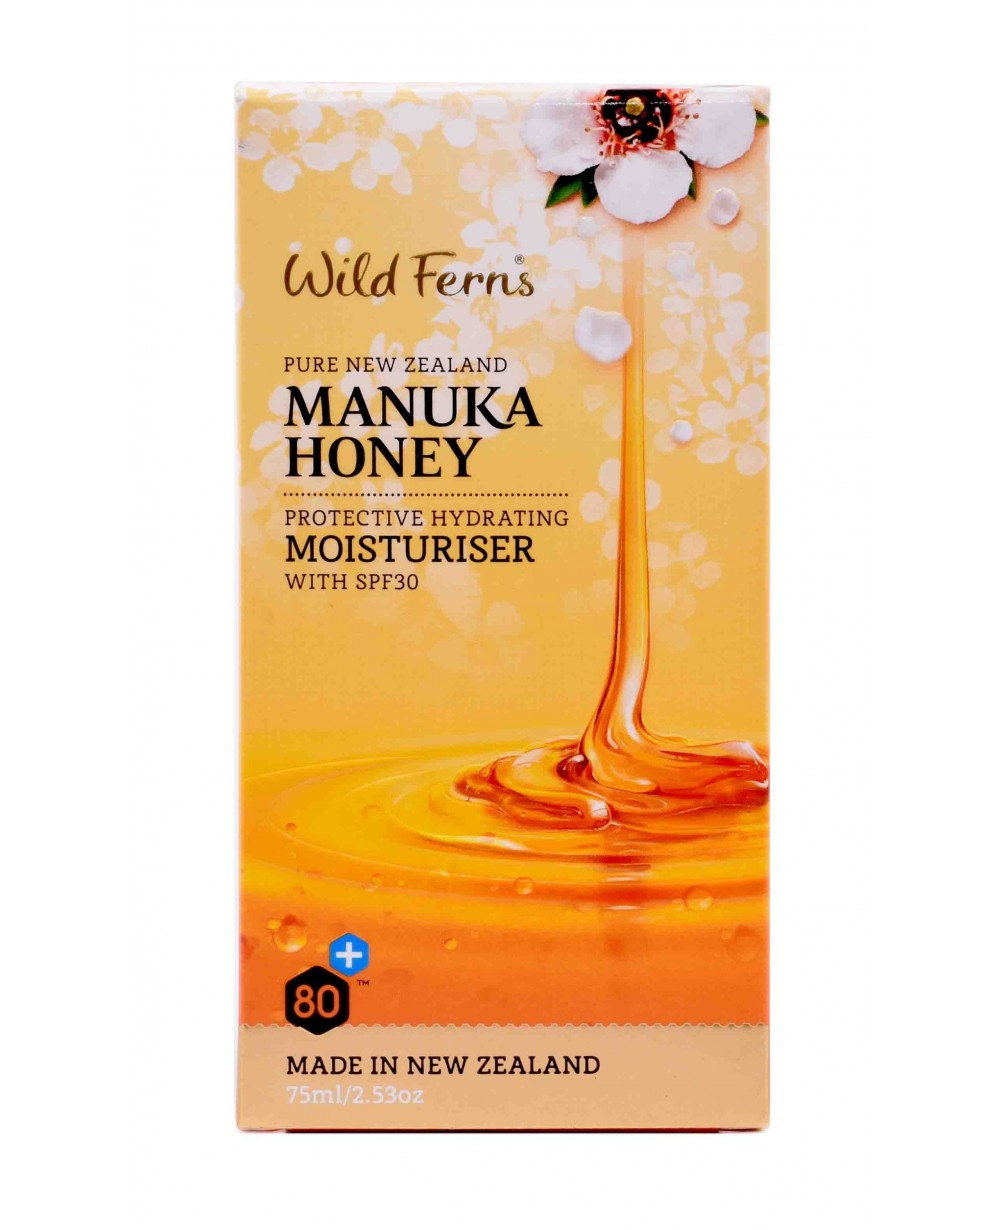 WILD FERNS MANUKA HONEY MOISTURISER WITH SPF 30, 75 ML